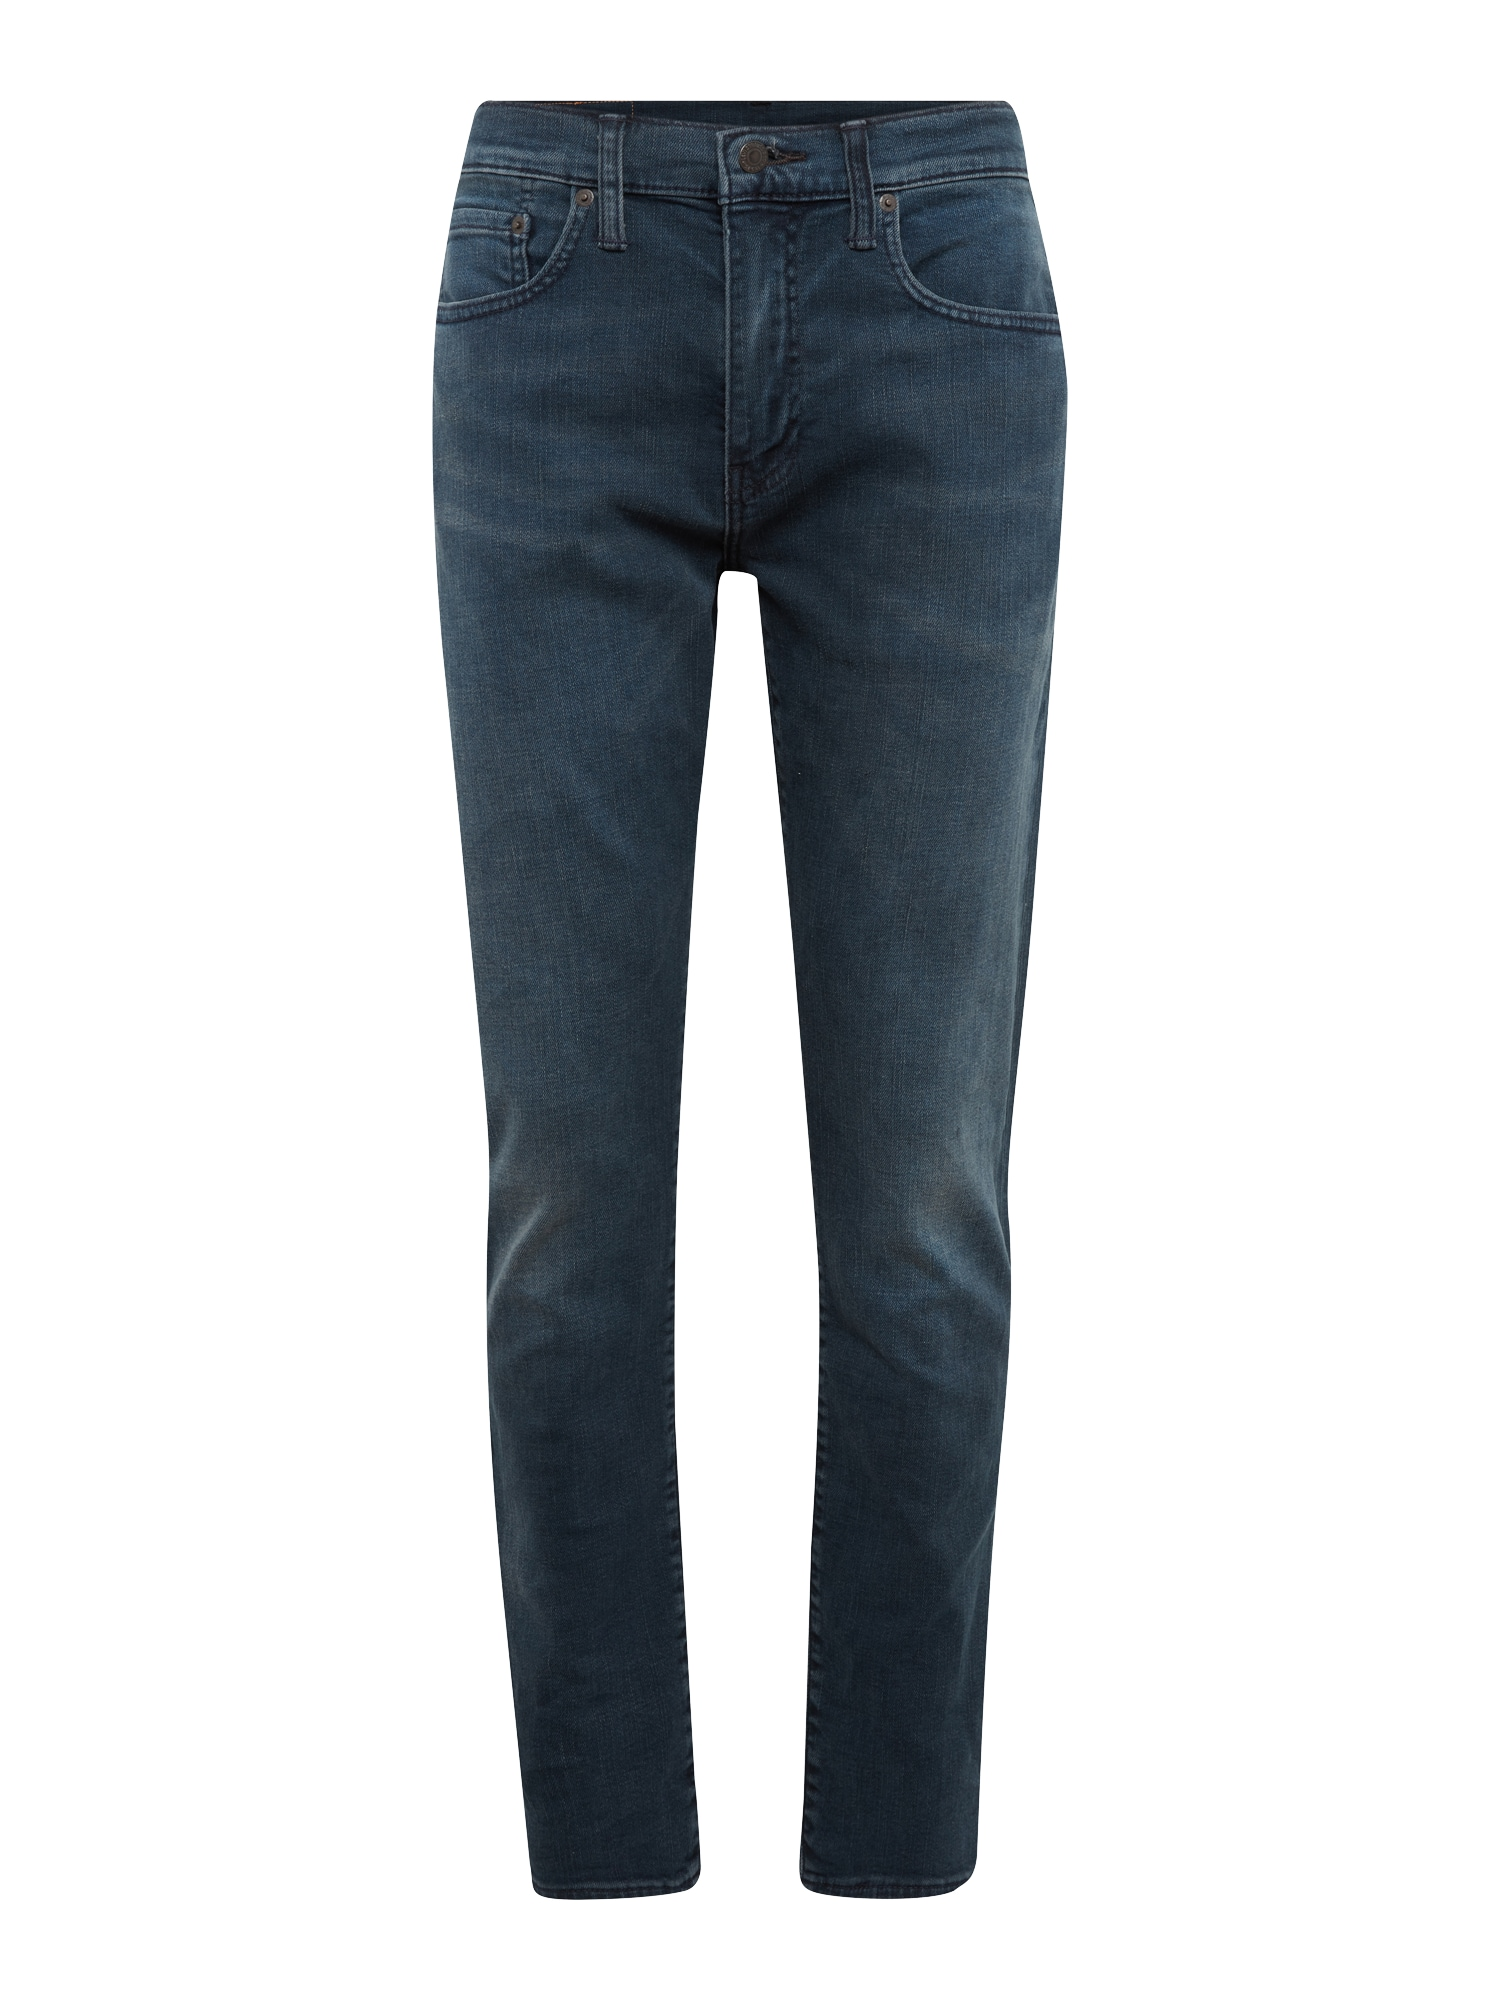 LEVI'S Heren Jeans 502™ REGULAR TAPER blauw denim